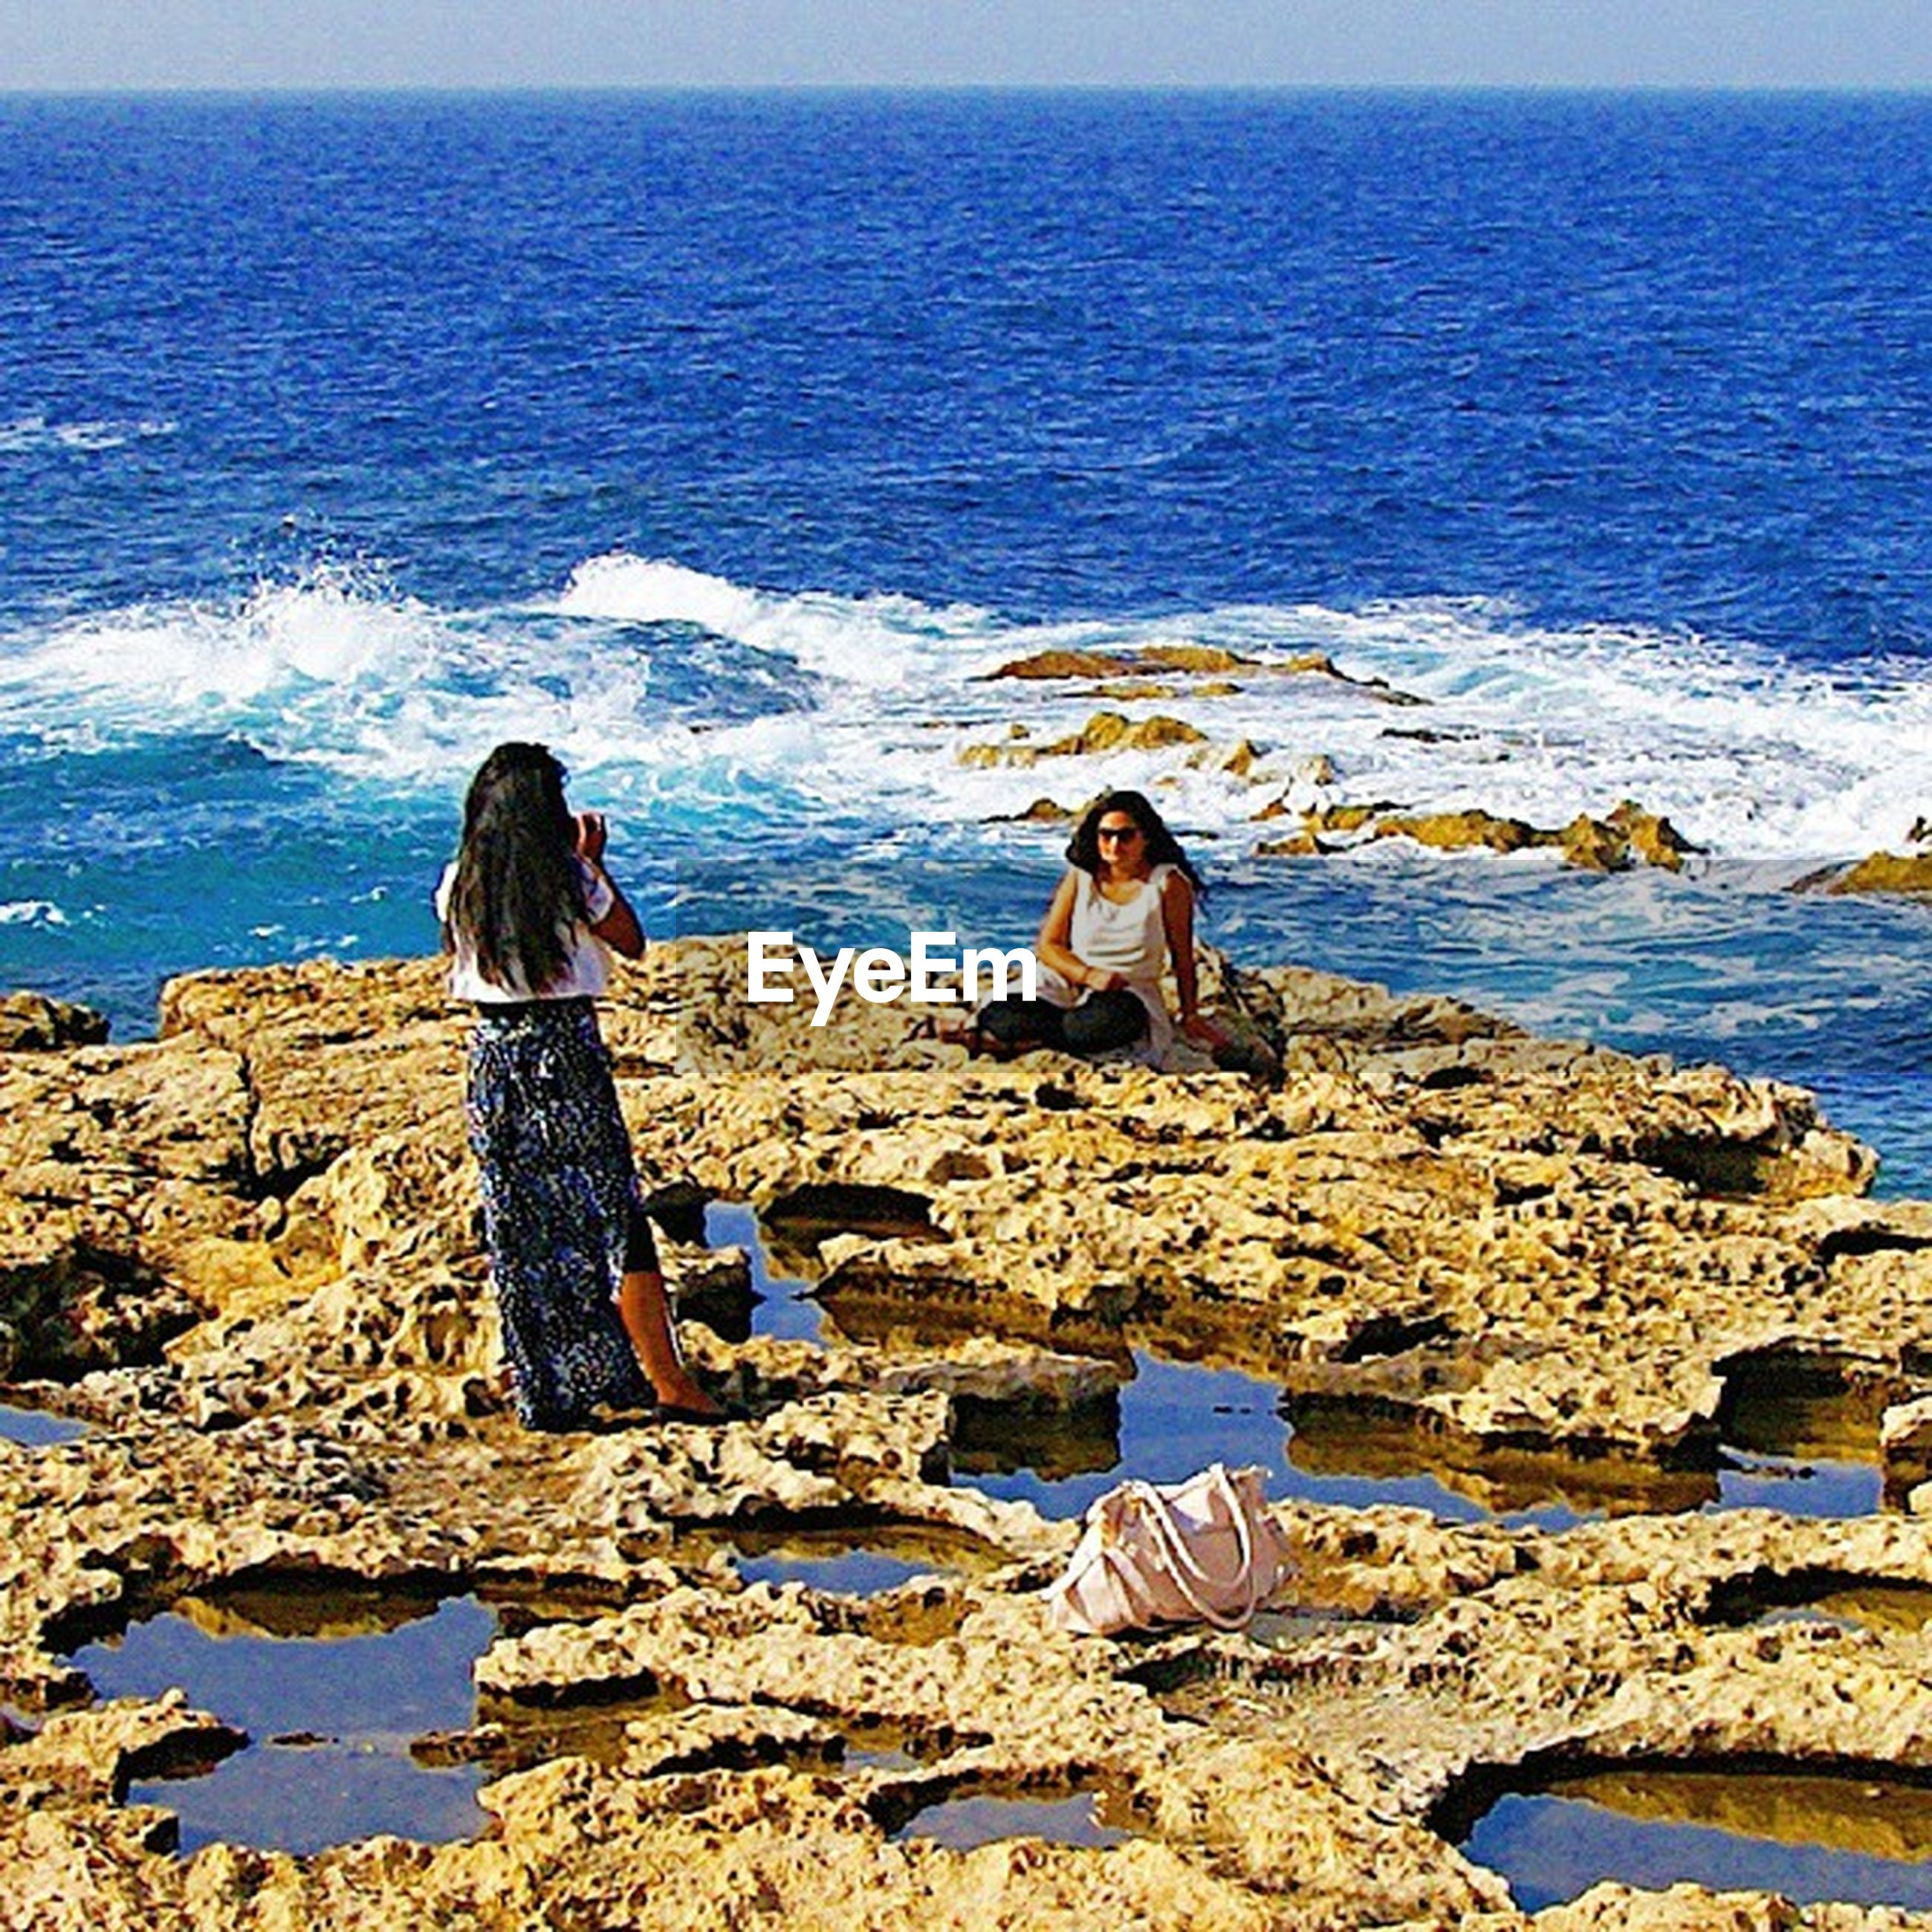 sea, water, lifestyles, rock - object, horizon over water, leisure activity, sitting, beach, scenics, tranquility, beauty in nature, vacations, rock formation, nature, men, tranquil scene, shore, rear view